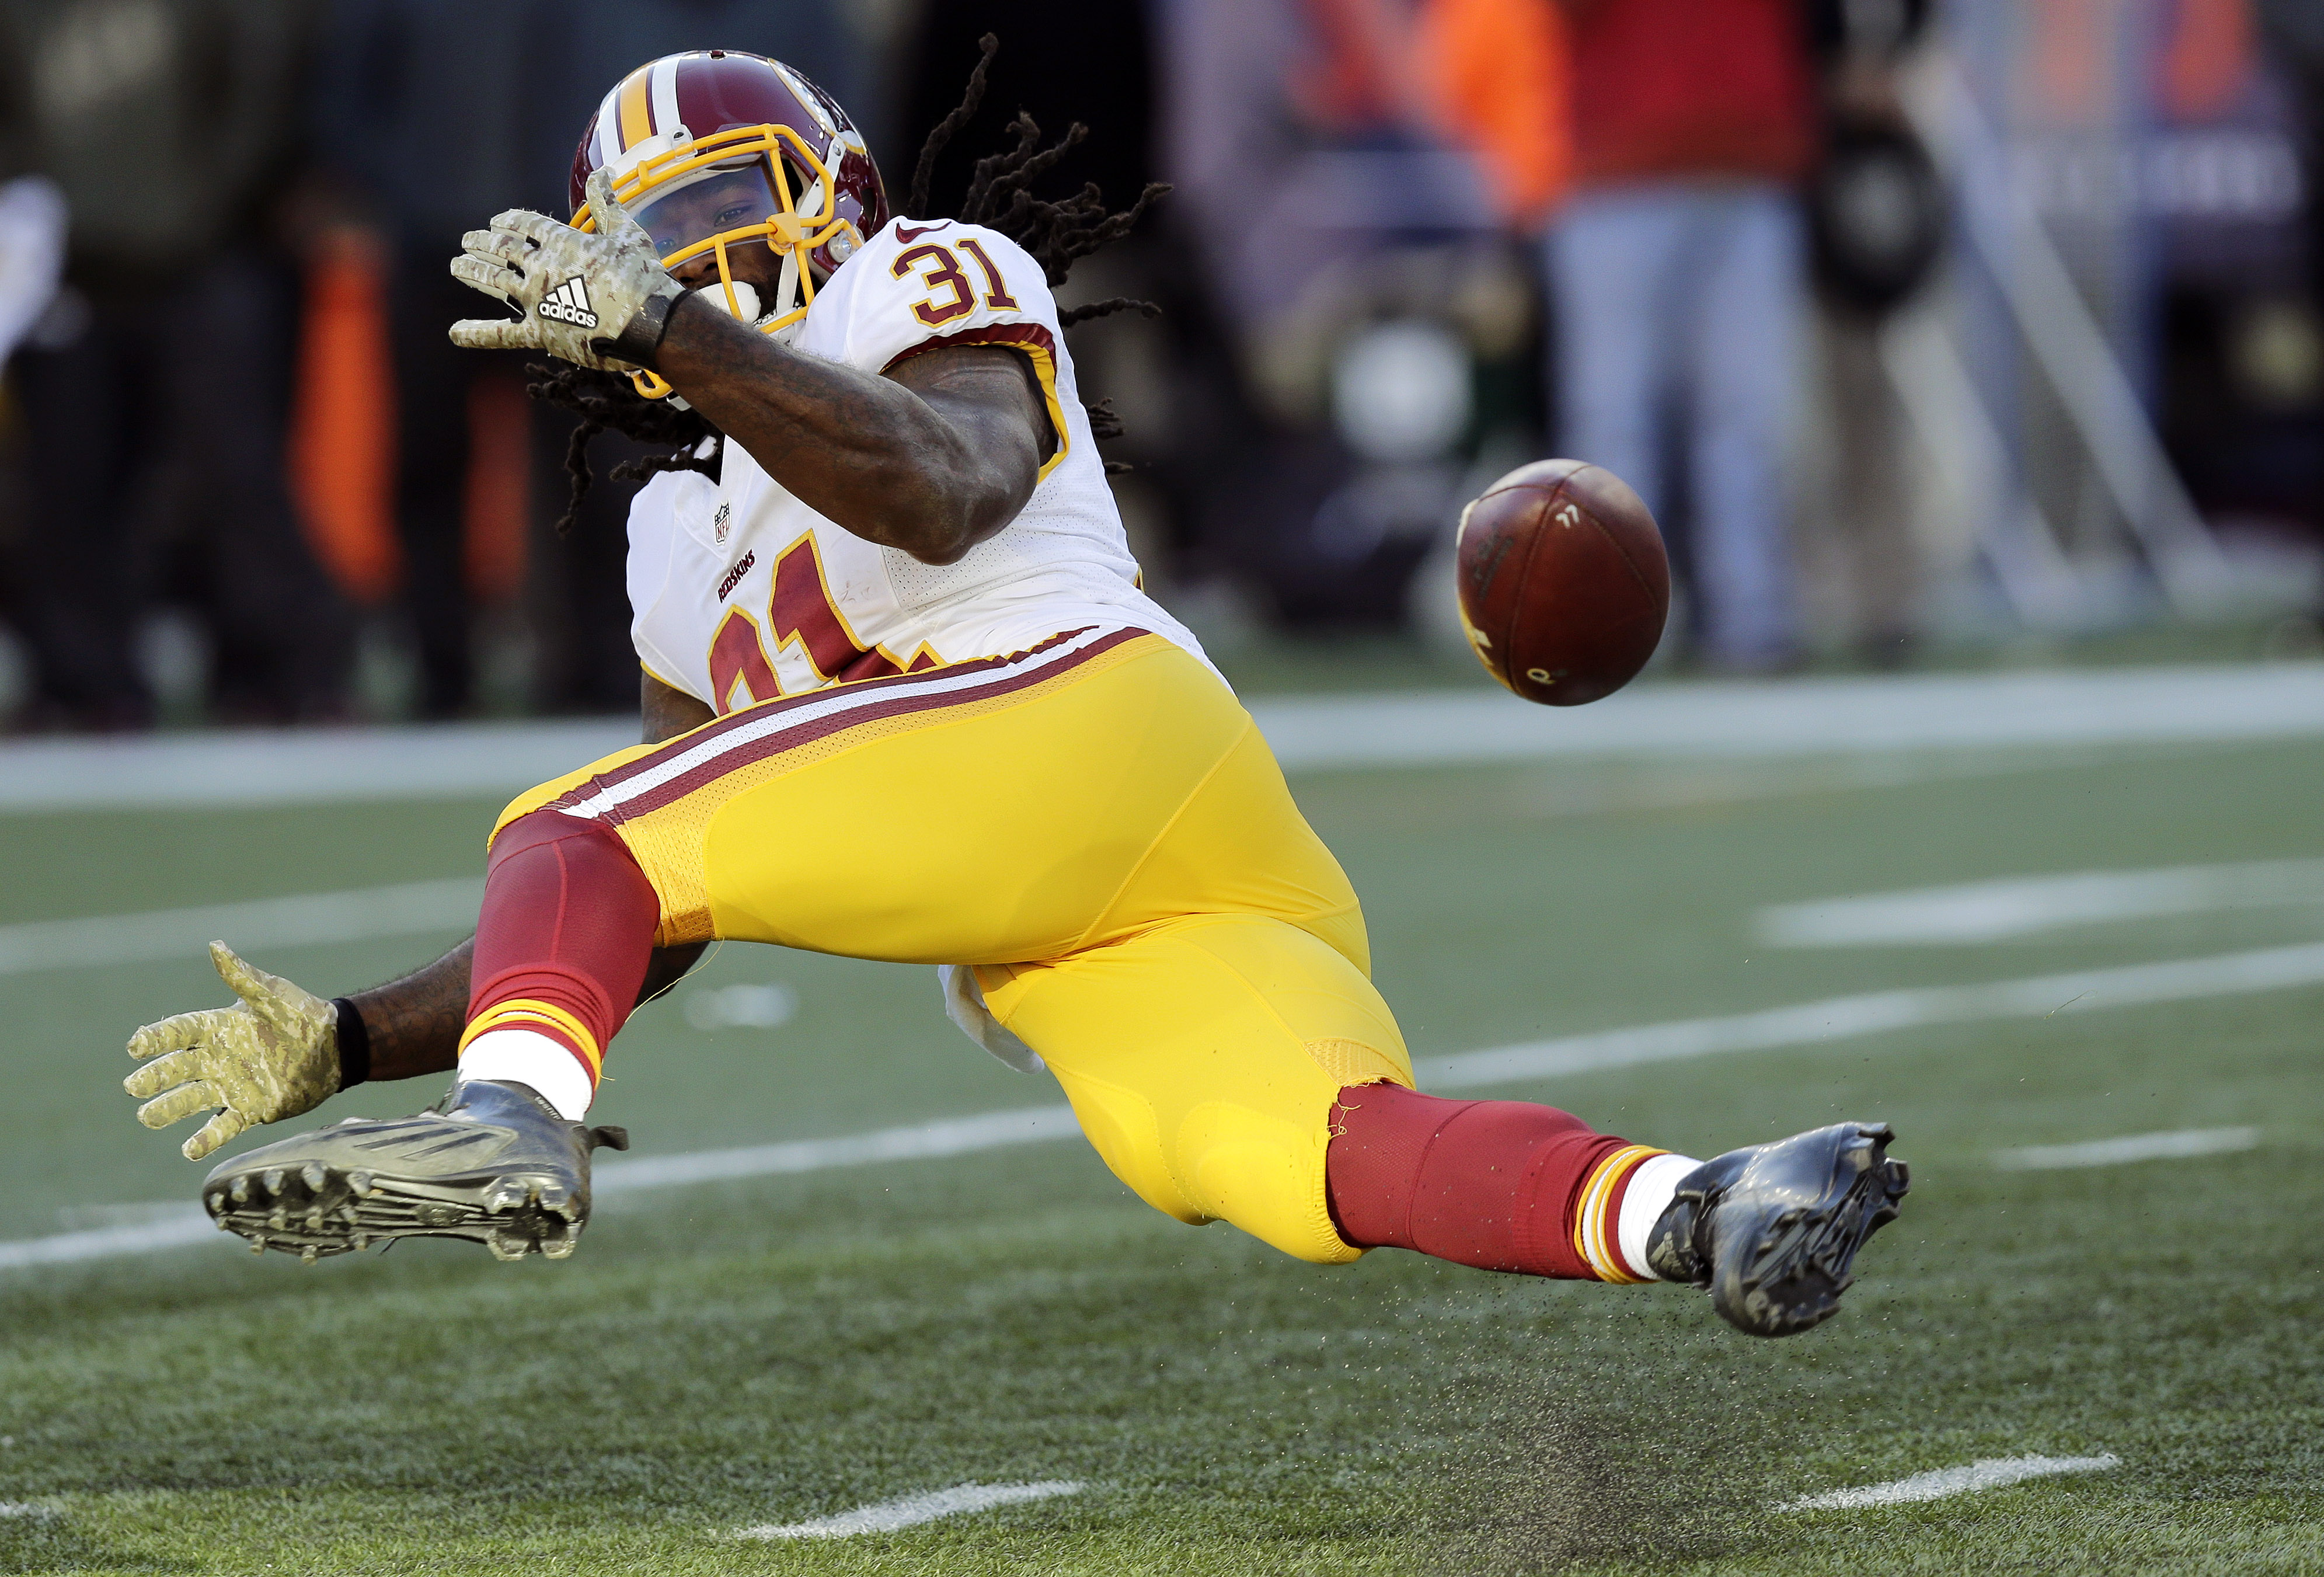 Washington Redskins running back Matt Jones (31) unable to catch a pass from quarterback Kirk Cousins during the second half of an NFL football game against the New England Patriots, Sunday, Nov. 8, 2015, in Foxborough, Mass. (AP Photo/Charles Krupa)